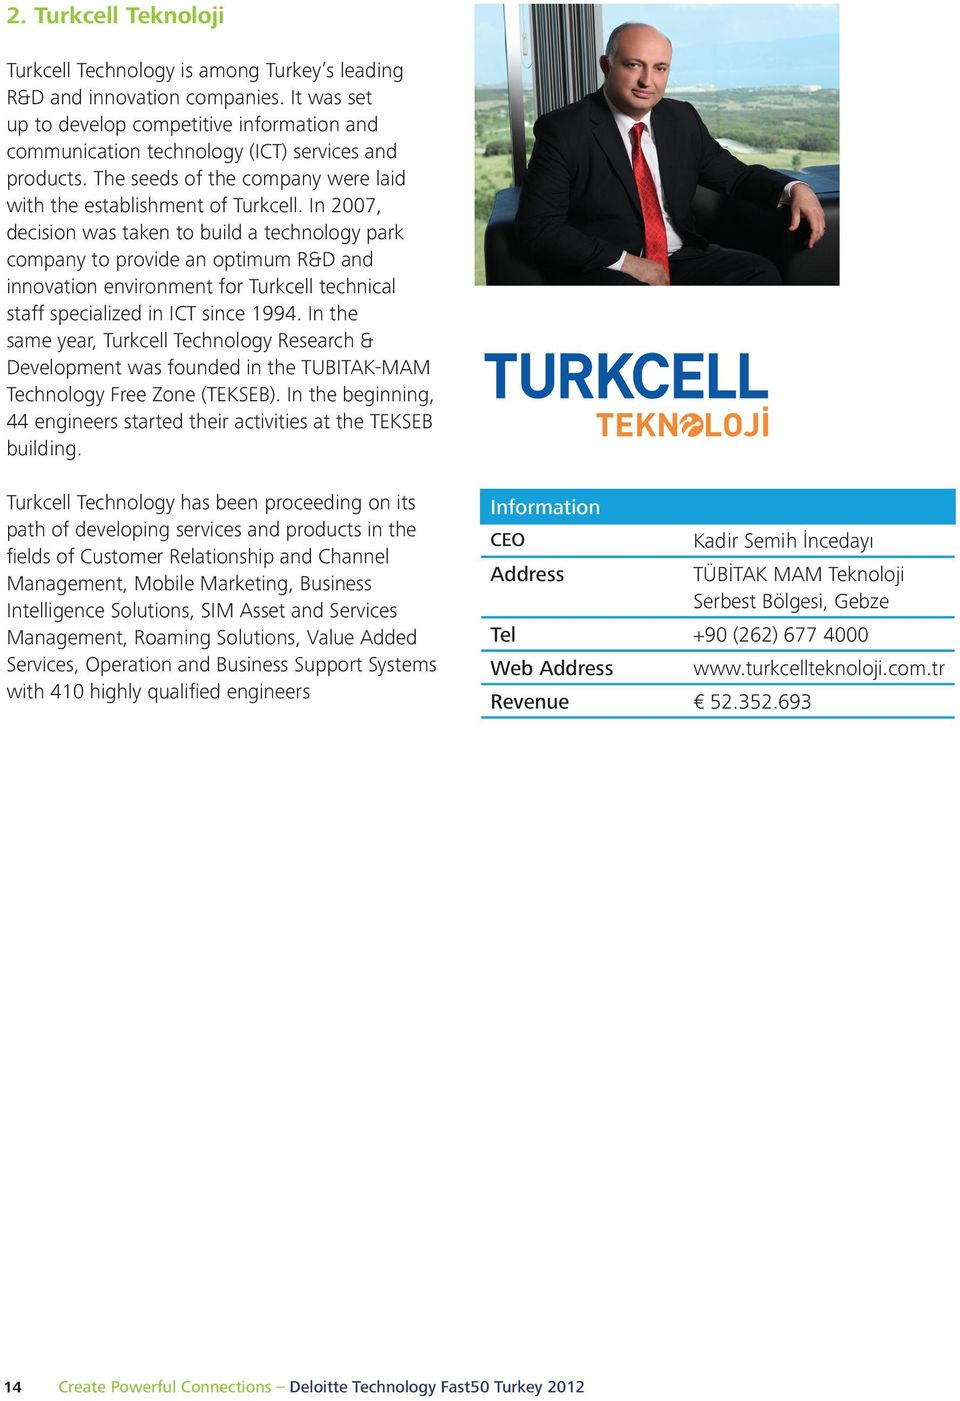 In 2007, decision was taken to build a technology park company to provide an optimum R&D and innovation environment for Turkcell technical staff specialized in ICT since 1994.